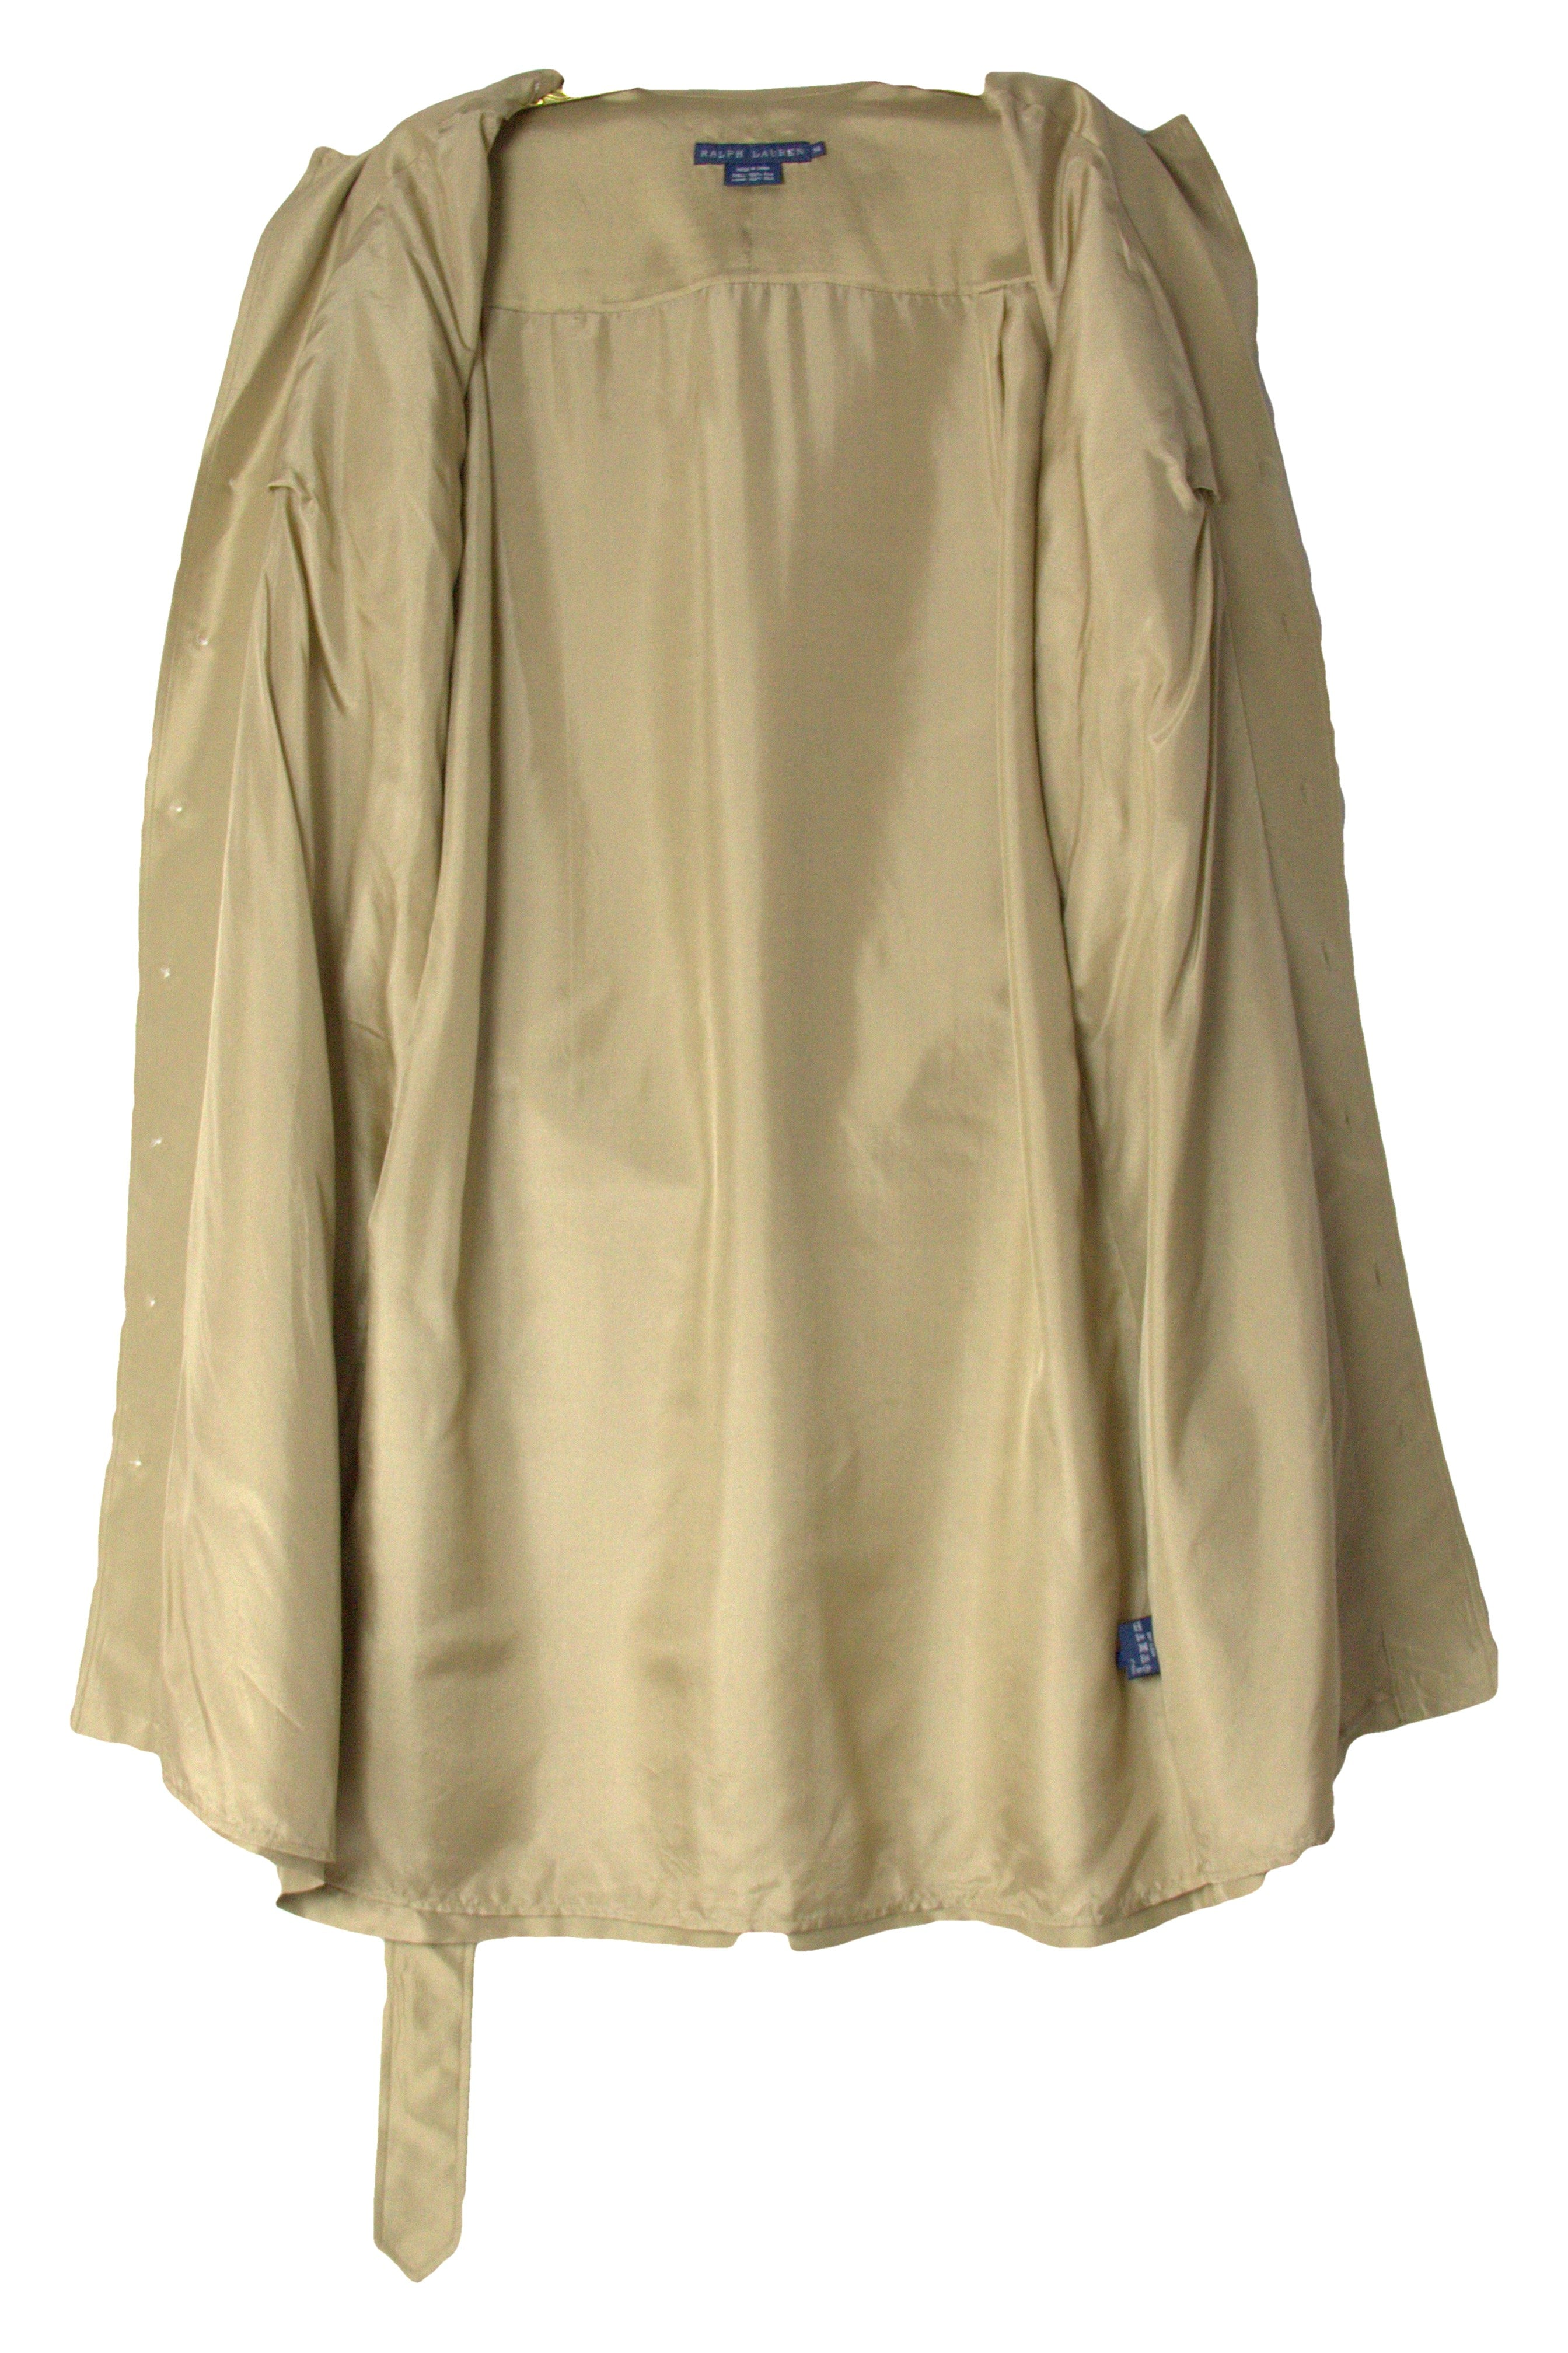 Ralph Lauren 100% Silk Safari Shirtdress, Size L - secondfirst